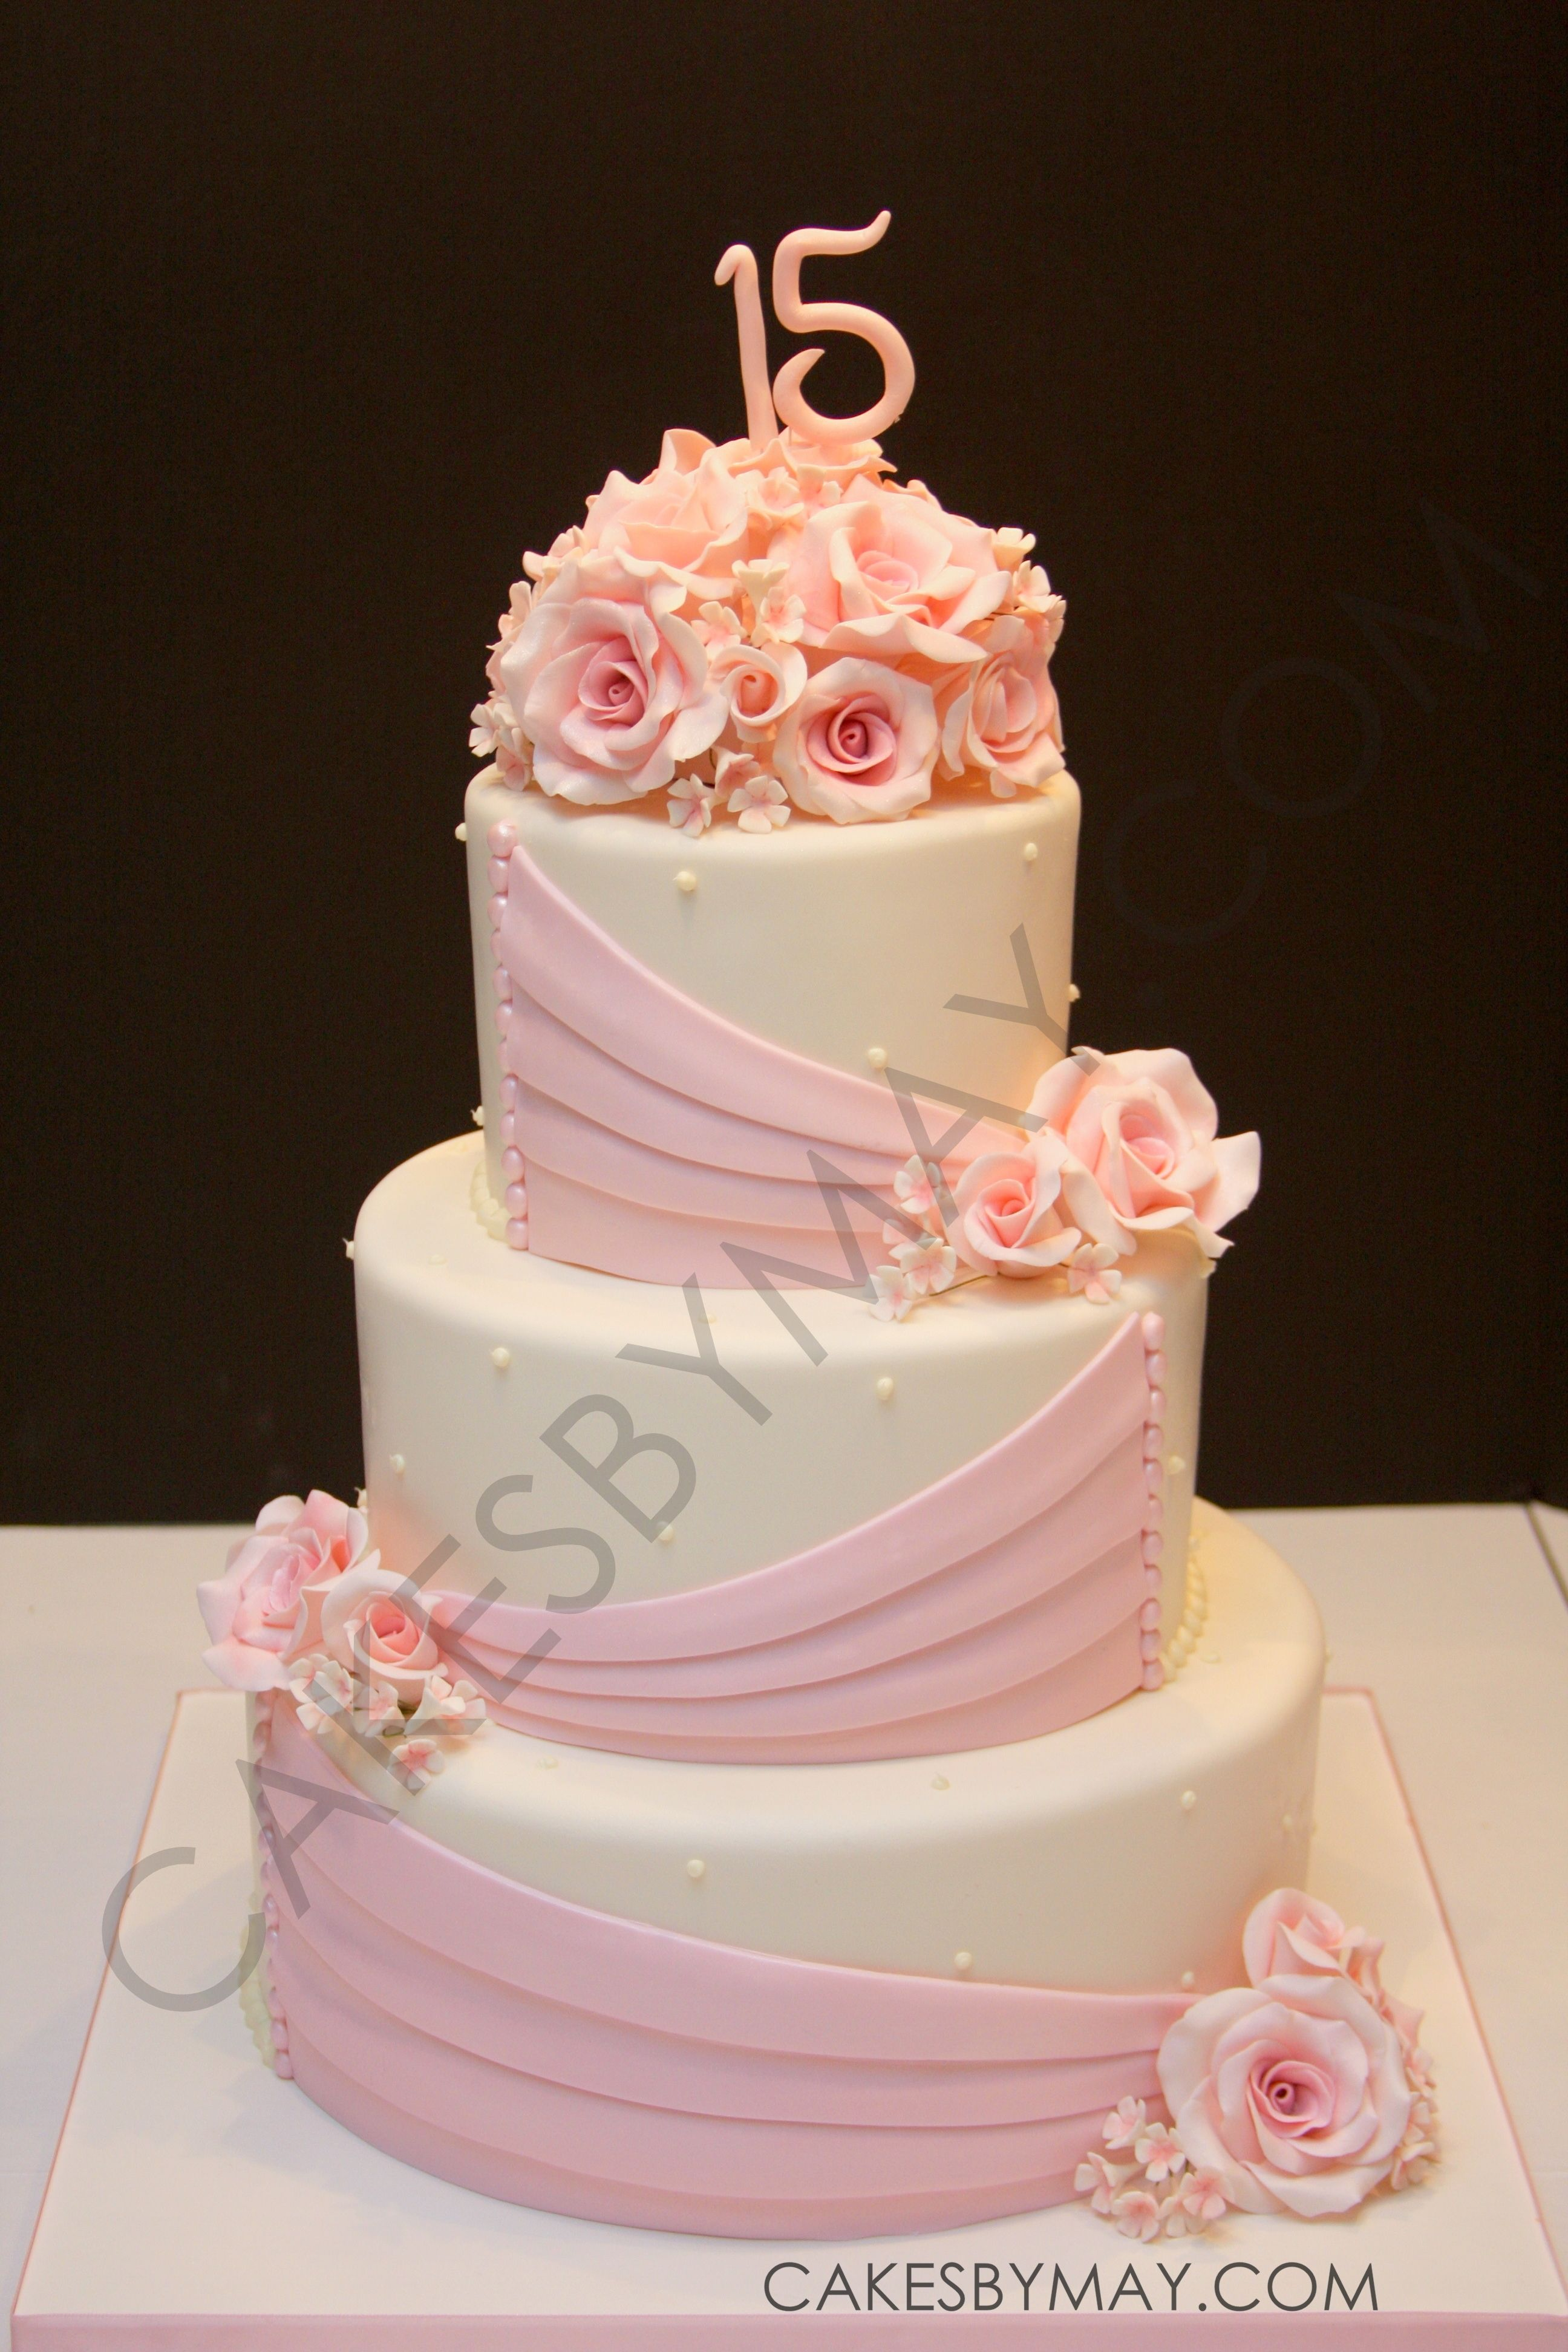 Pink Roses and Draping Quinceanera Cake - Love the delicate pink roses and drapes on this elegant cake